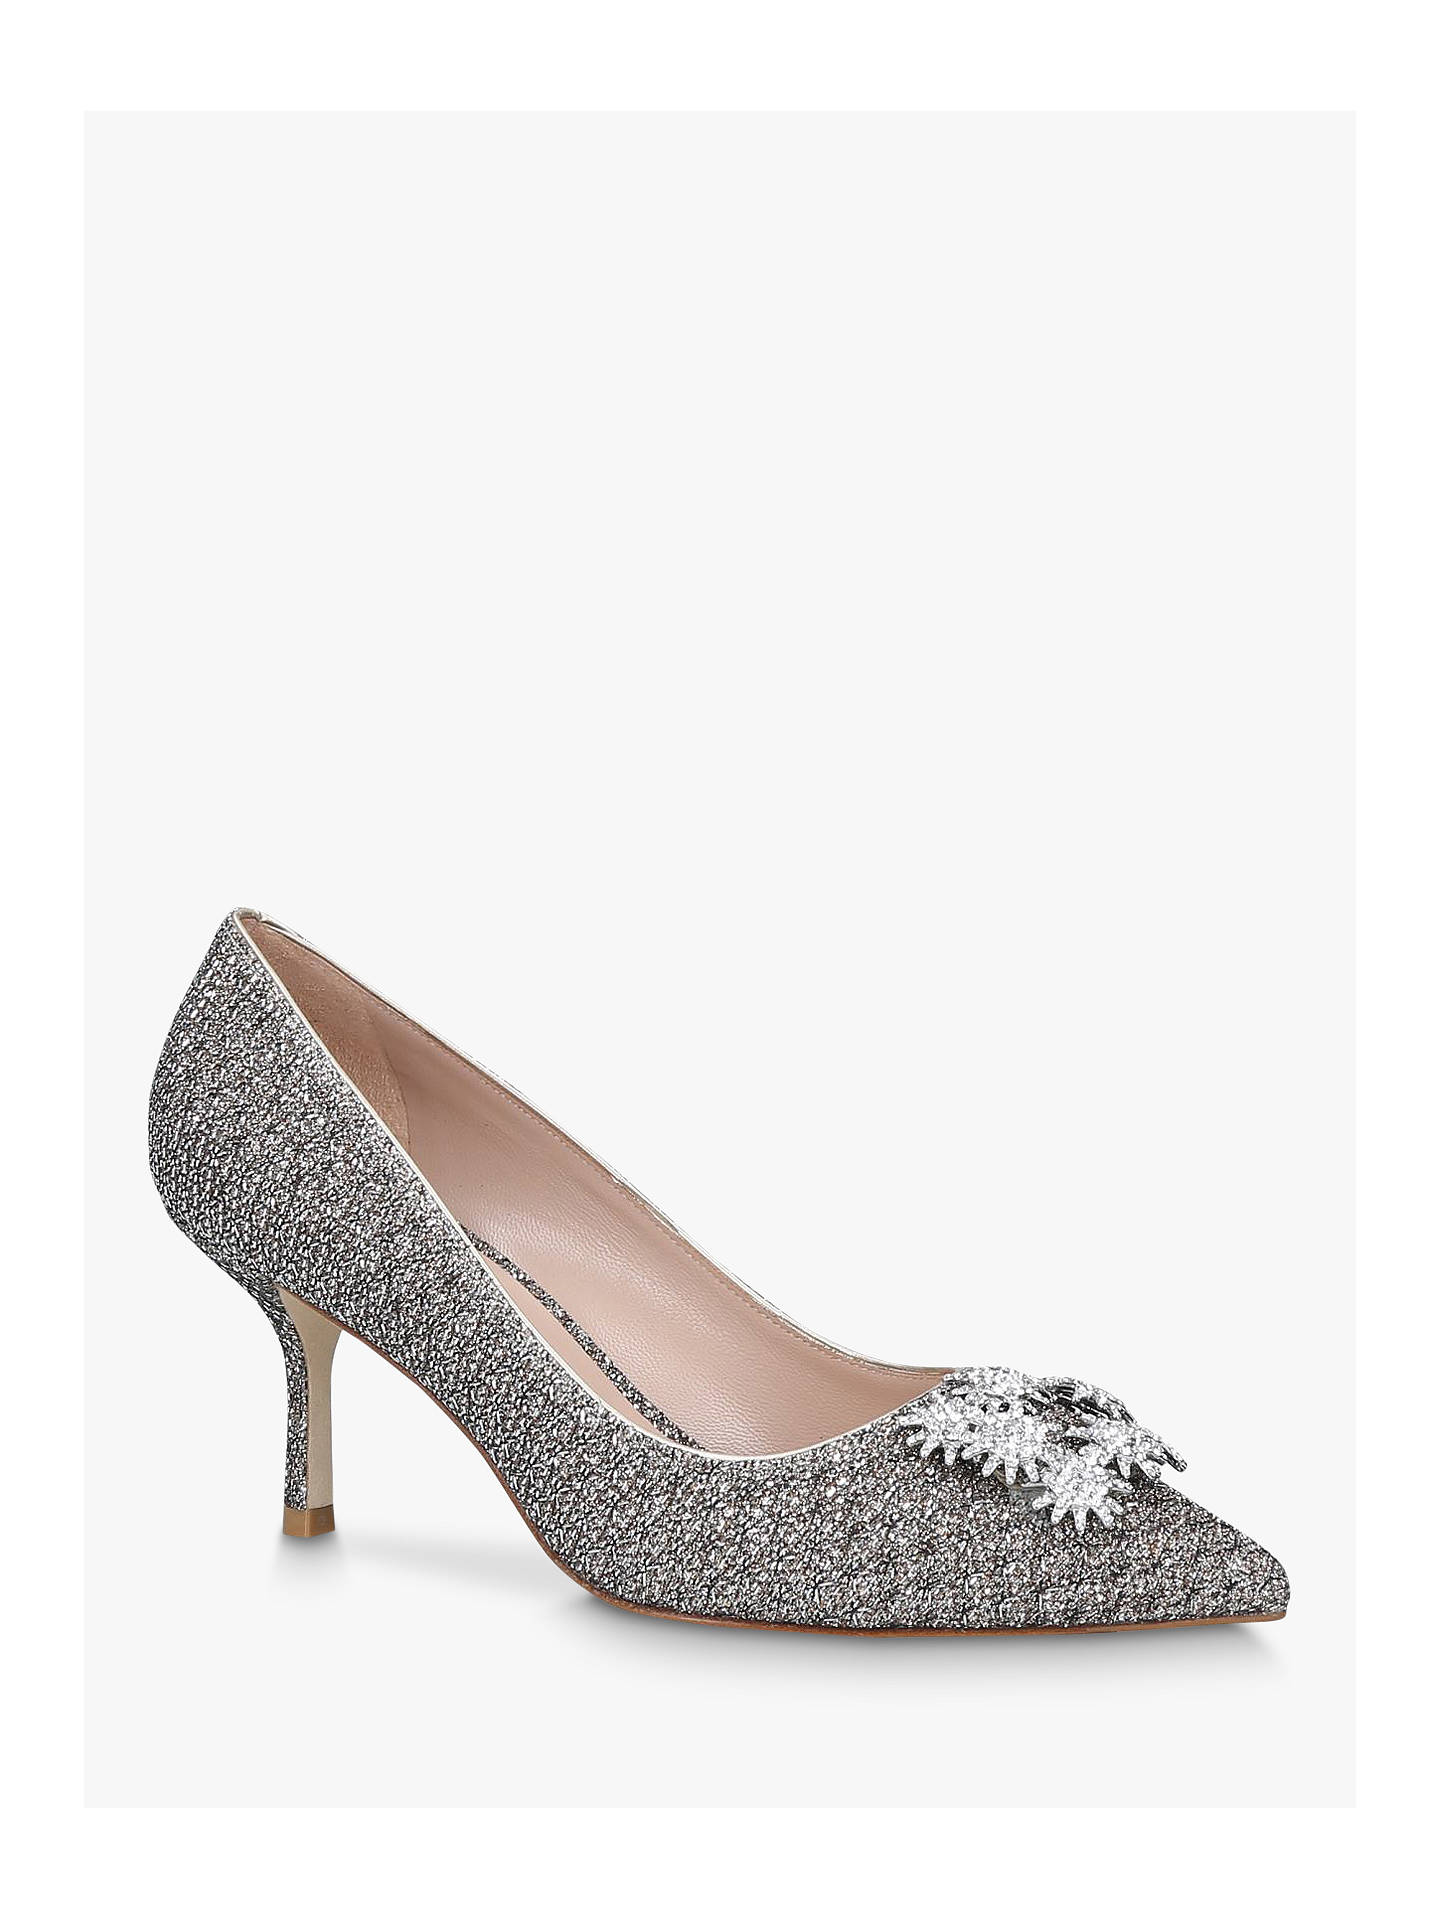 Buy Stuart Weitzman Kelsey Strass Lamé Embellished Court Shoes, Champagne, 3 Online at johnlewis.com